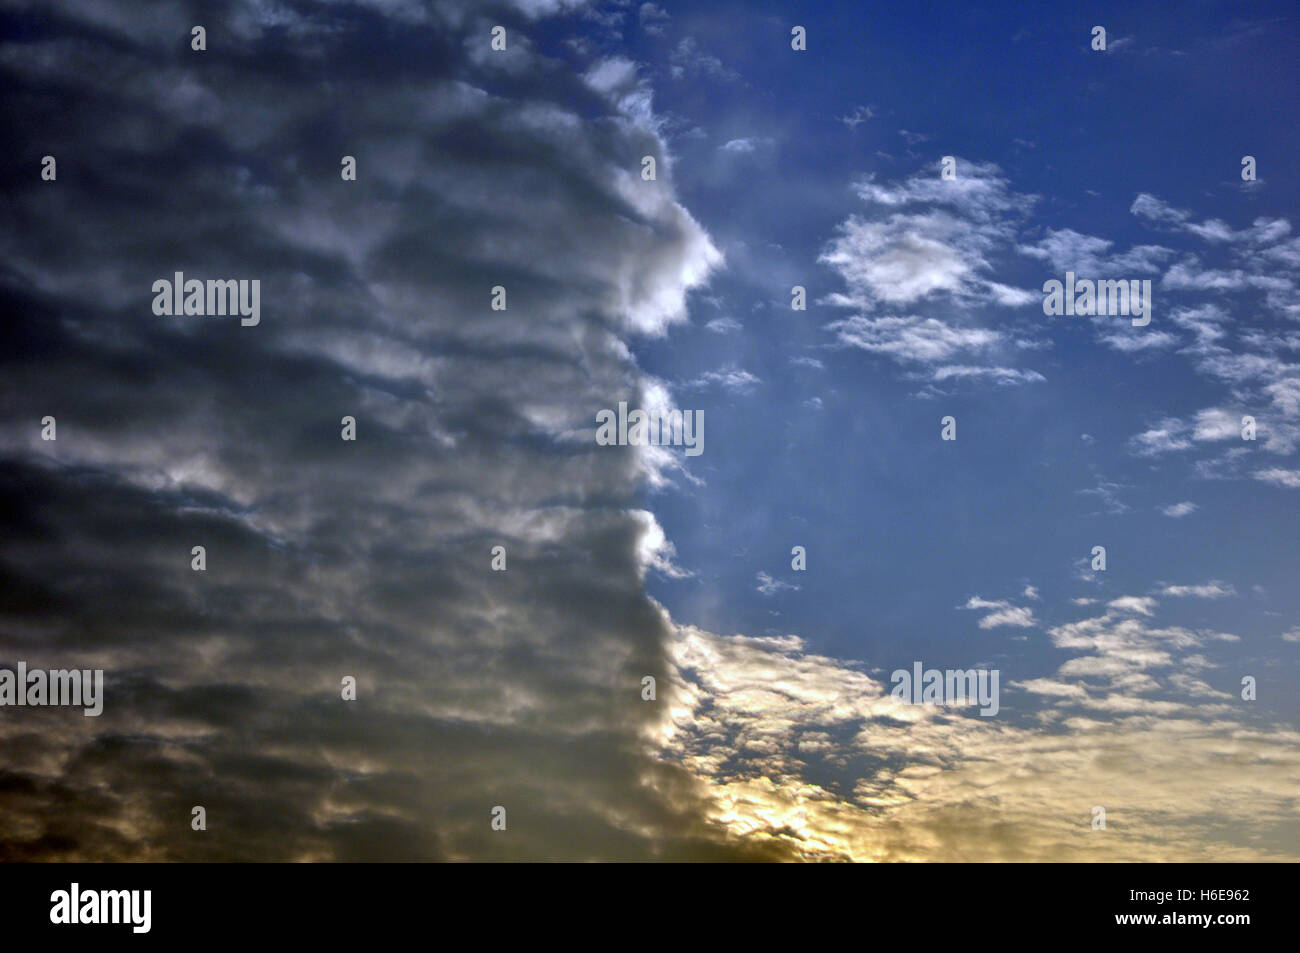 Clouds divided sky during sunset colorful light against dark - Stock Image